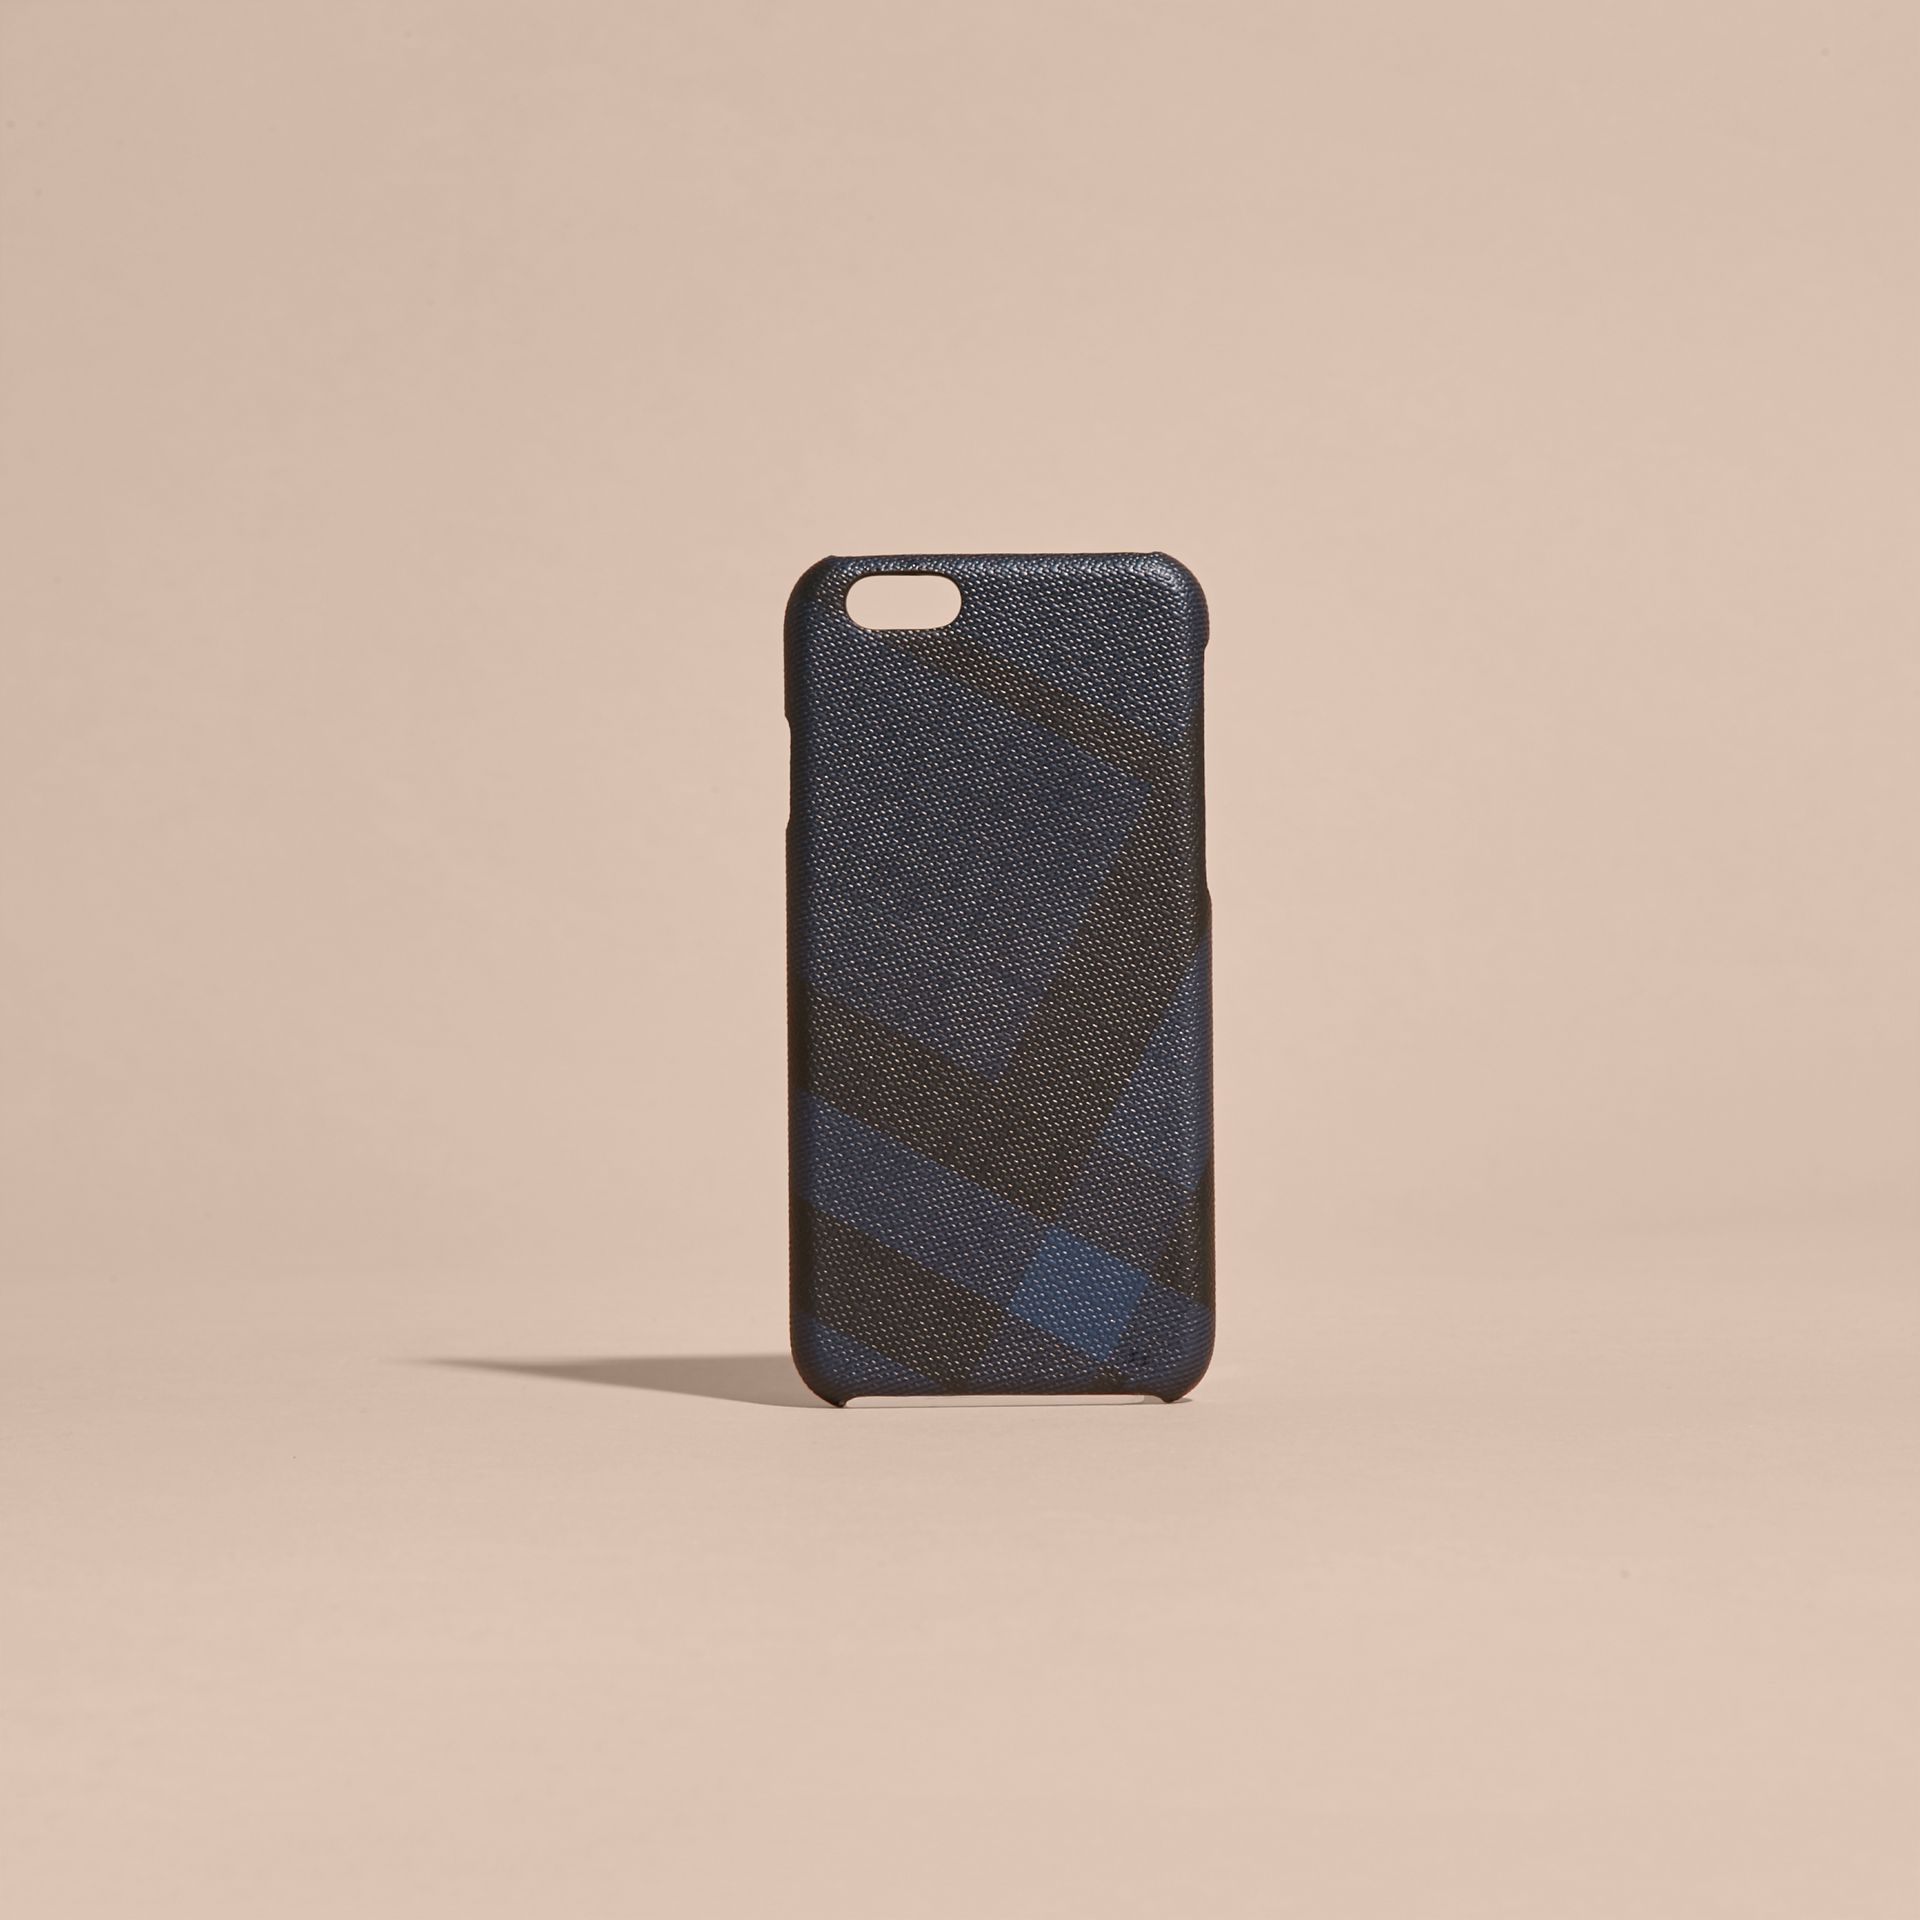 iPhone 7-Etui in London Check (Marineblau/schwarz) - Damen | Burberry - Galerie-Bild 5